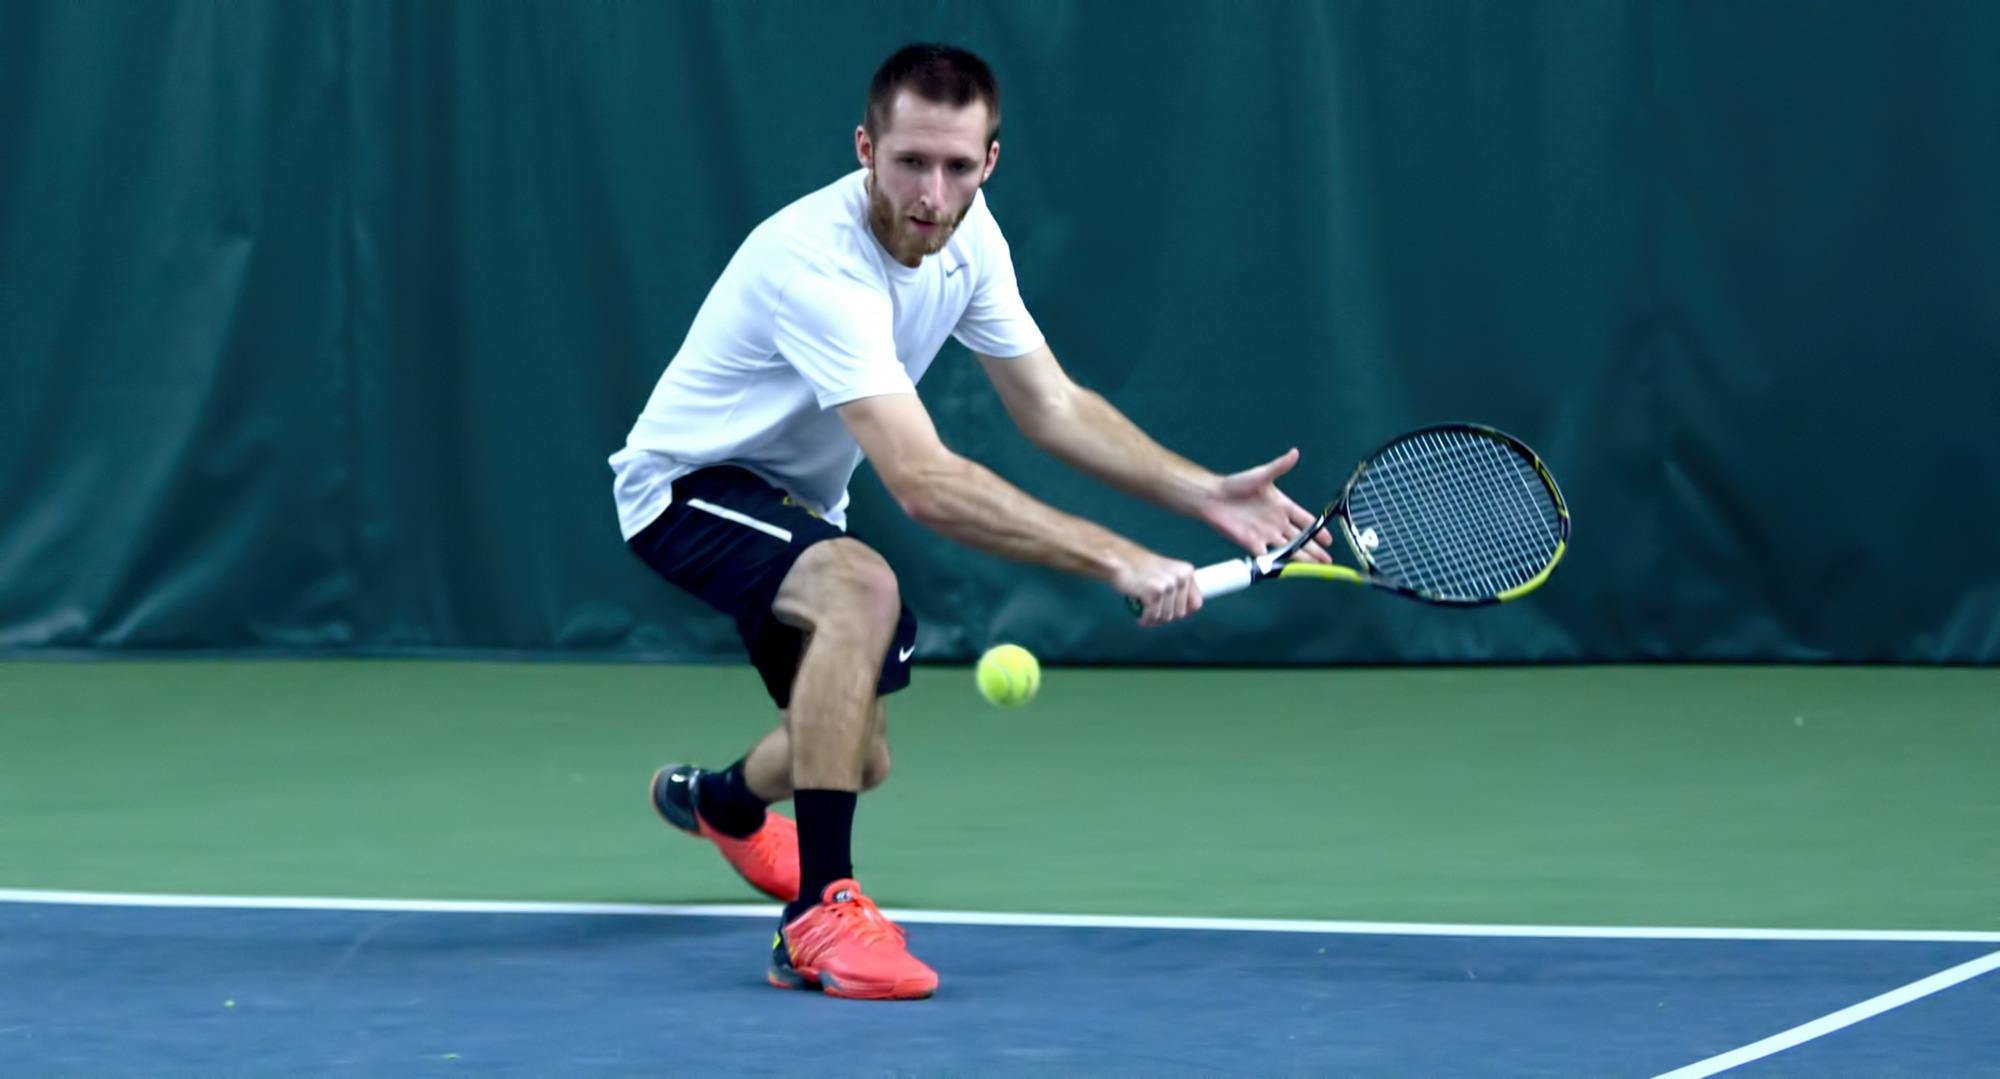 Senior Jesse Schneeberger won both his singles and doubles matches in the final team match of his career and ended 2017 with career highs in singles and doubles victories.